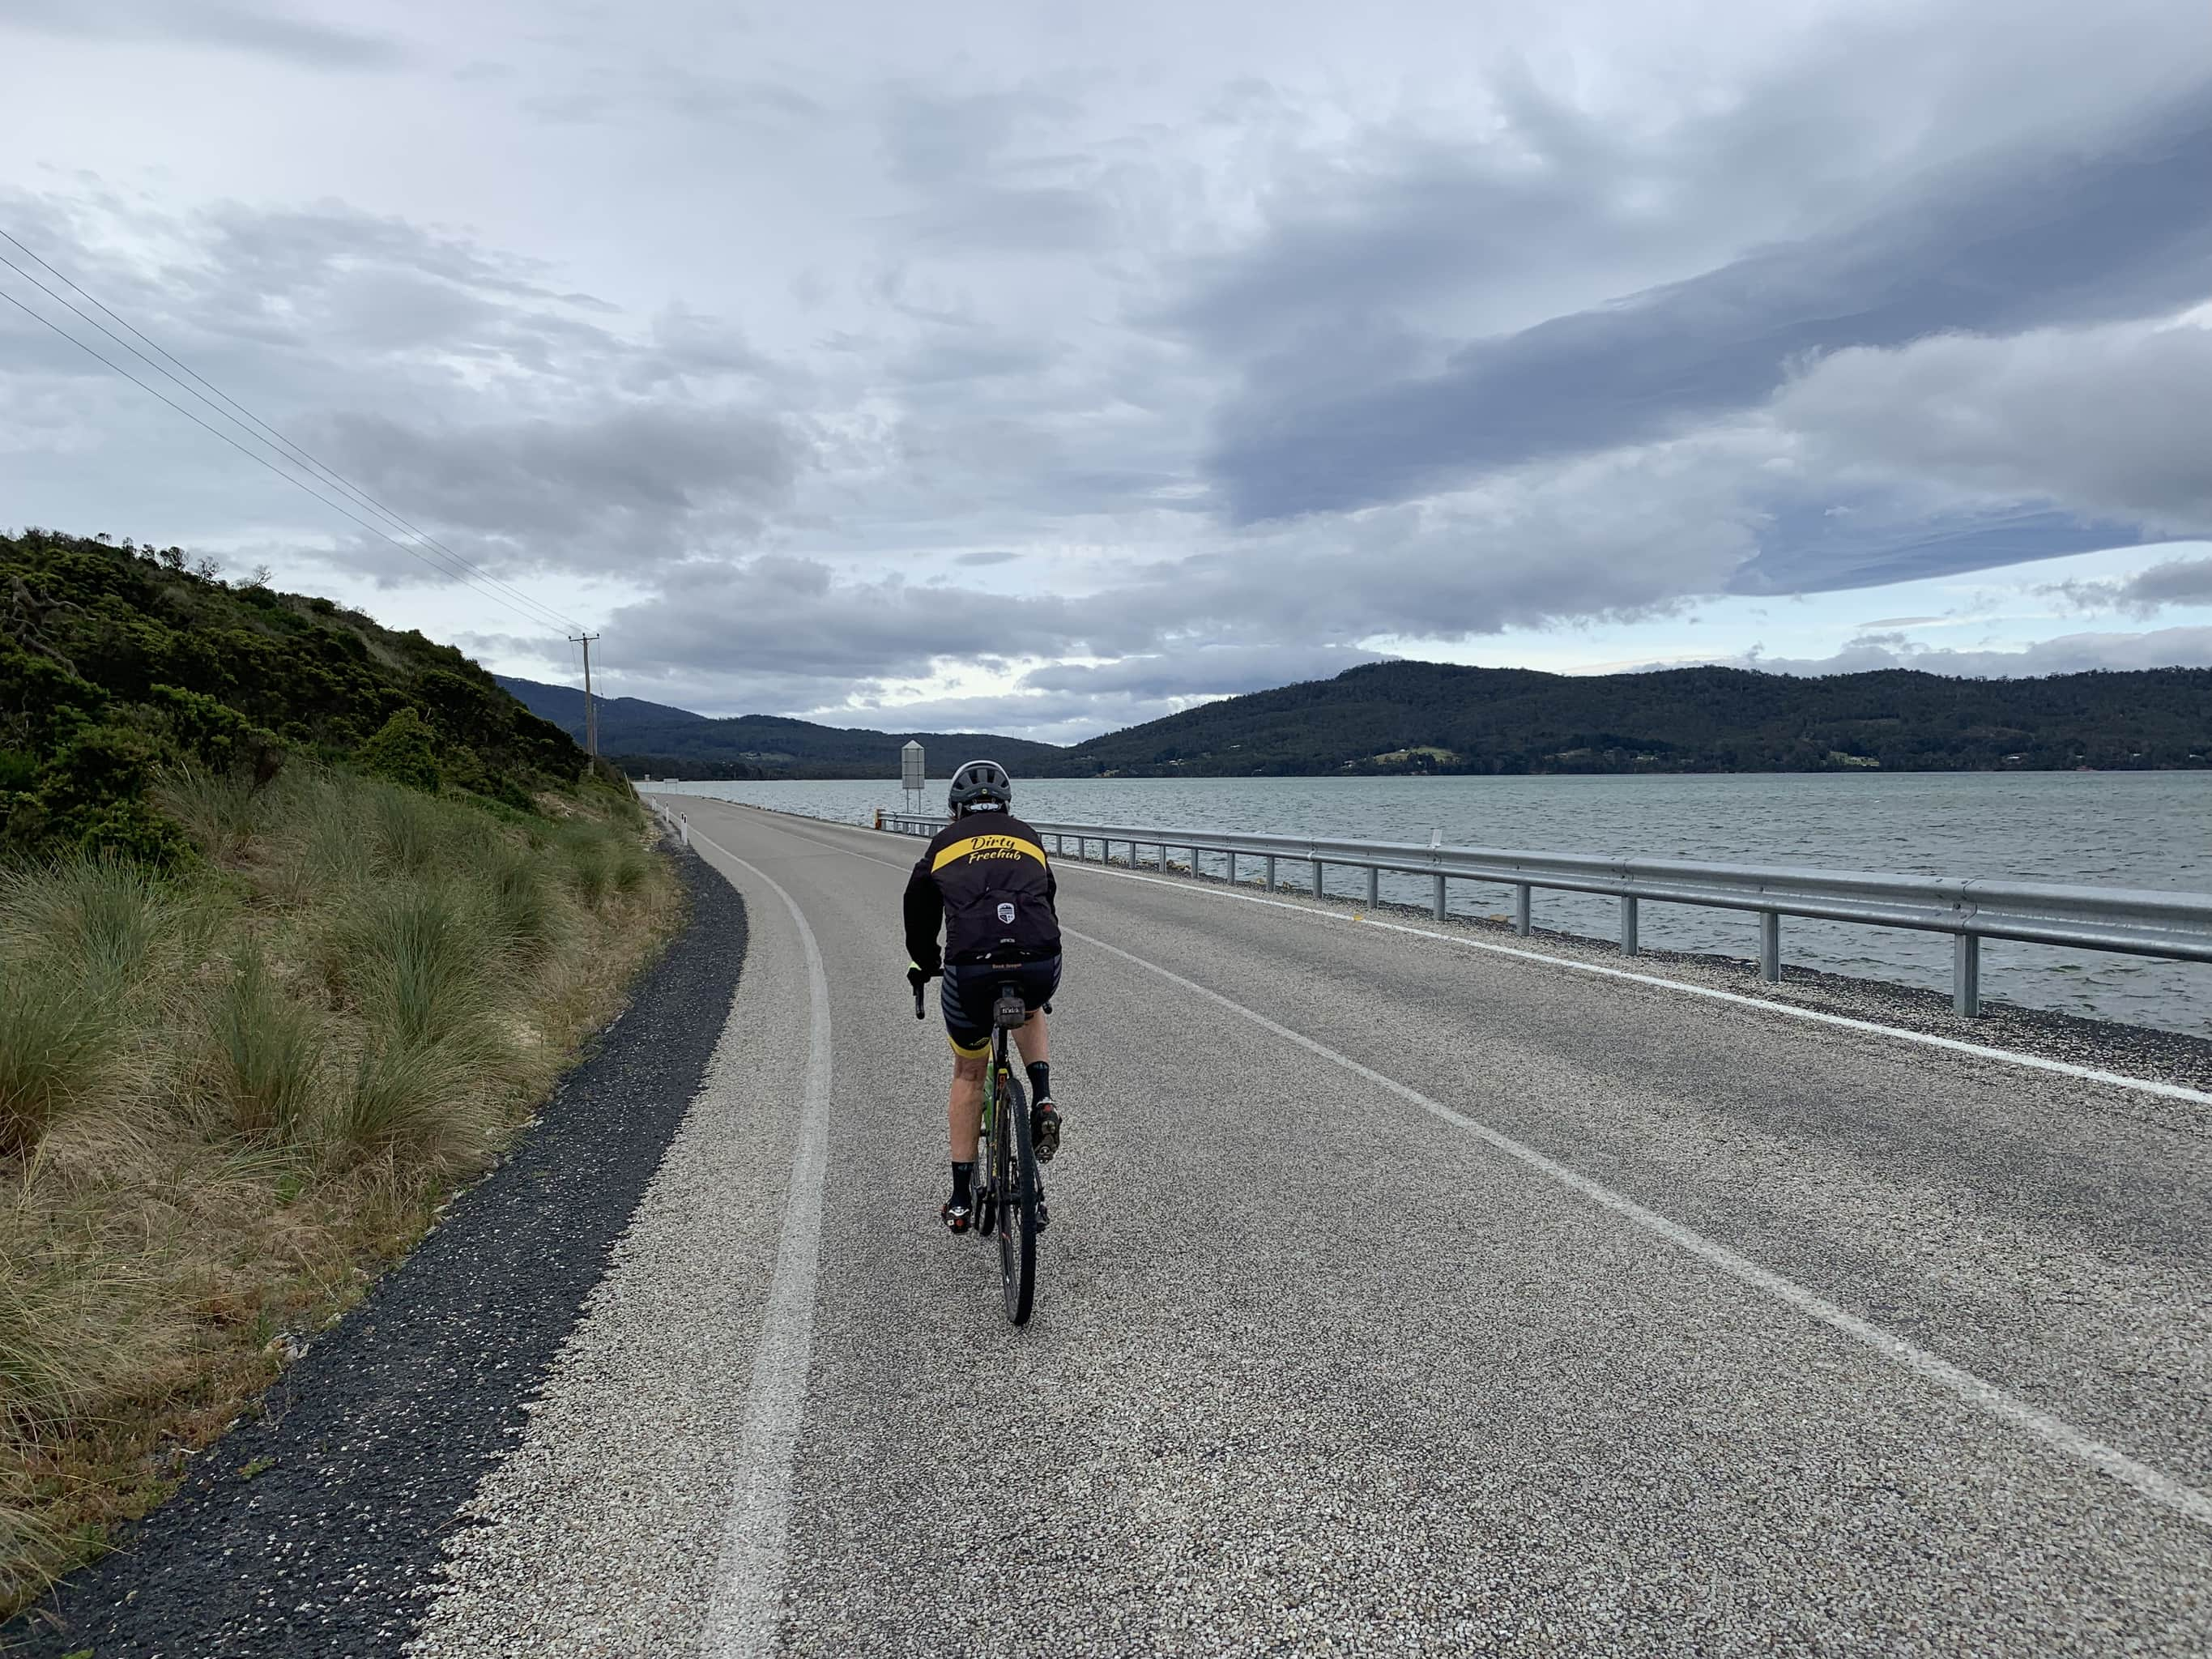 Bike rider on paved road leading south from Bruny Island Neck.